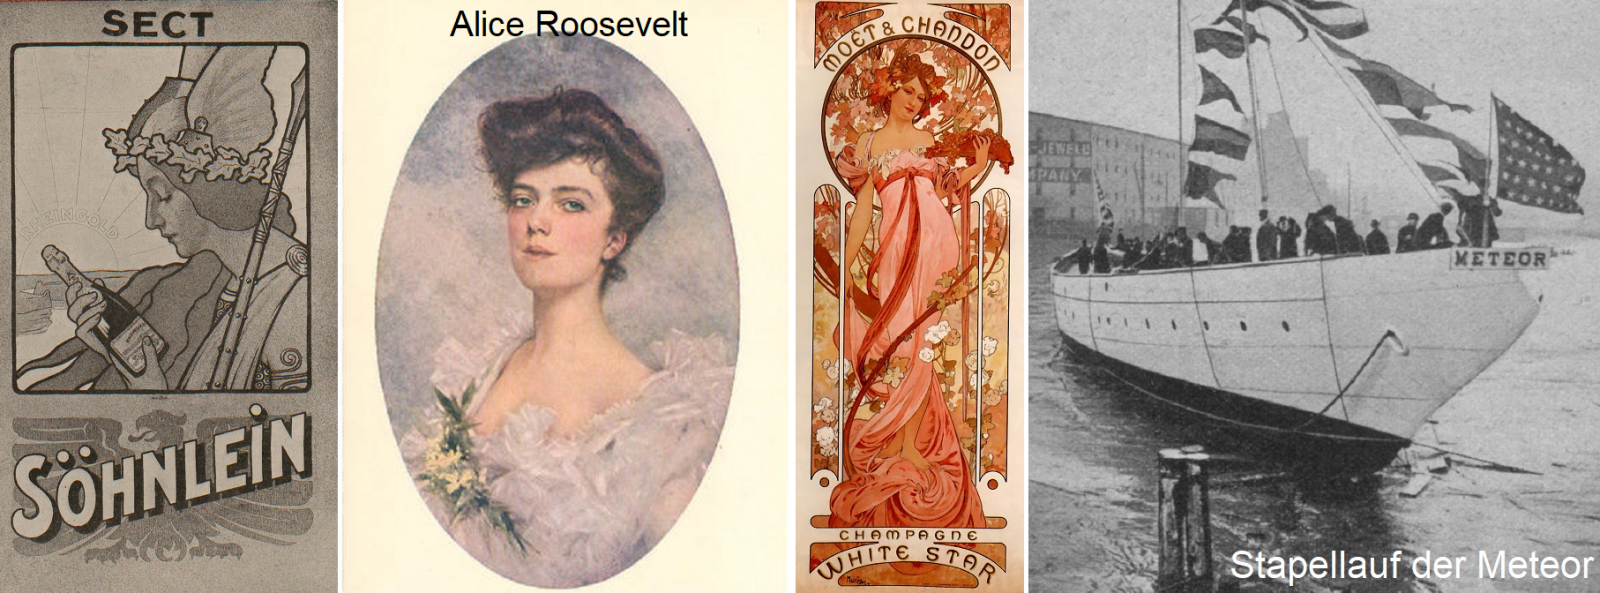 Ship christening - Söhnlein sparkling wine, Alice Roosevelt, White Star bottle, launch Meteor